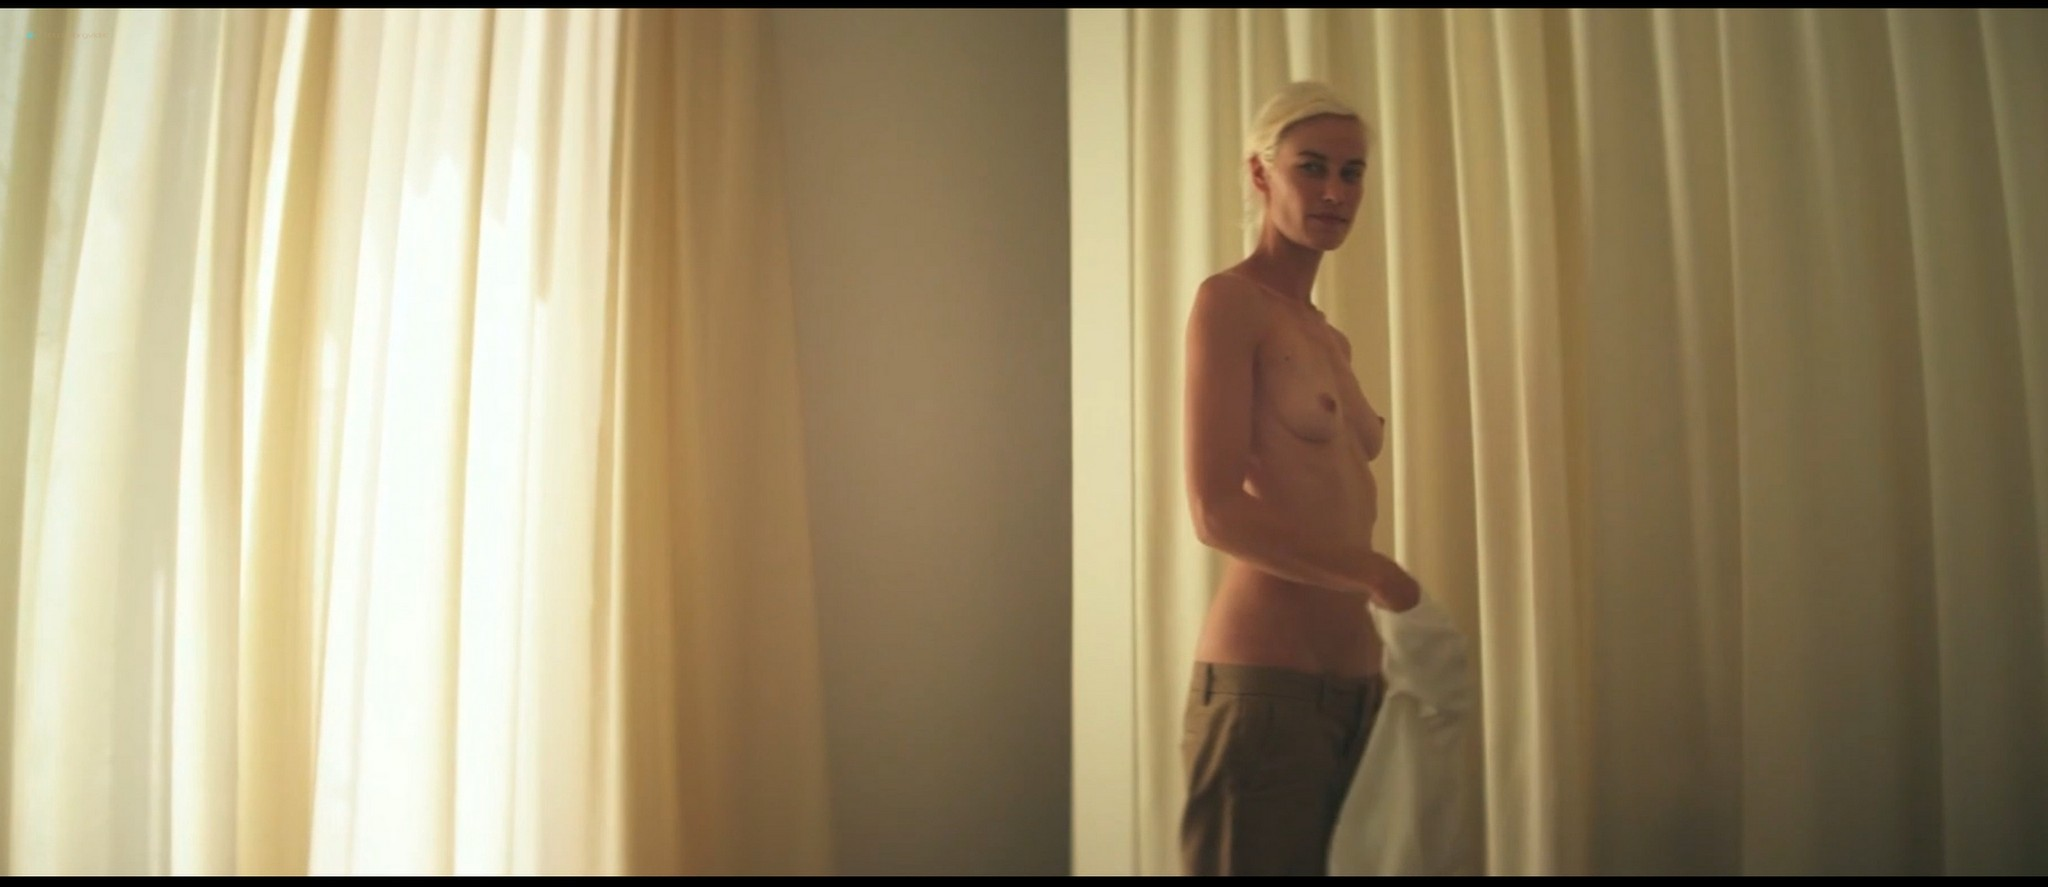 Delfine Bafort nude full frontal and sex - You Go To My Head (2017) HD 1080p Web (9)